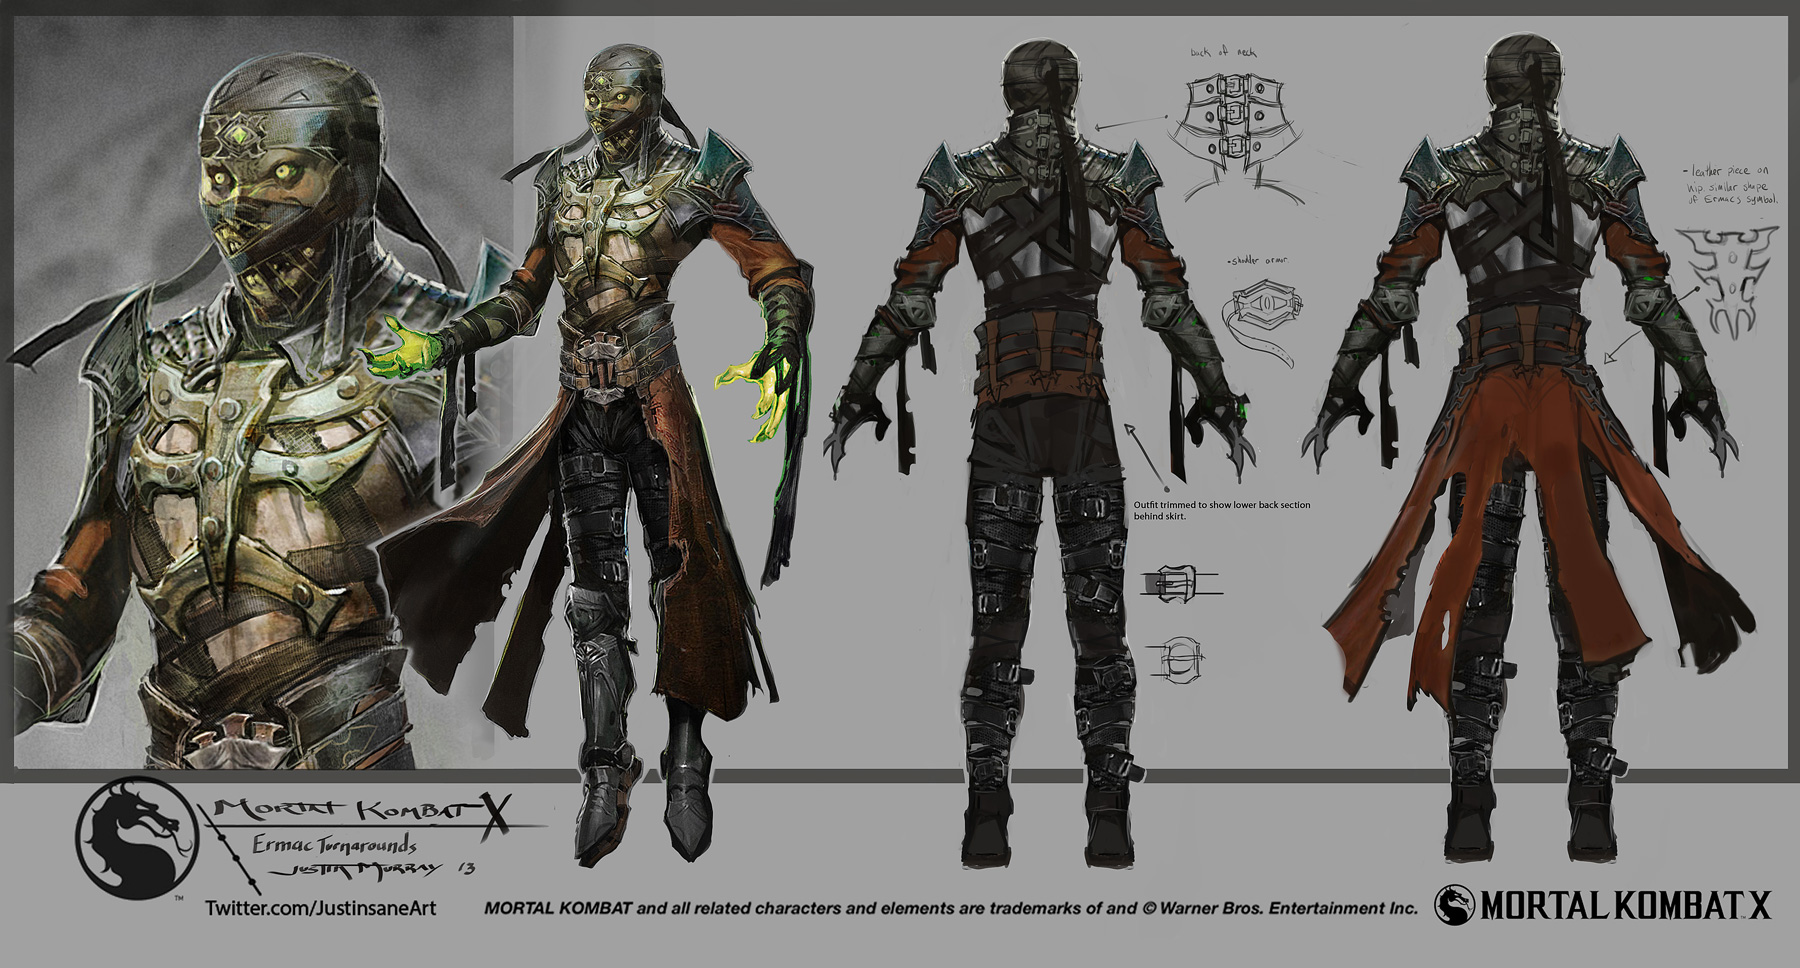 Exclusive Mortal Kombat X Concept Art By Justin Murray